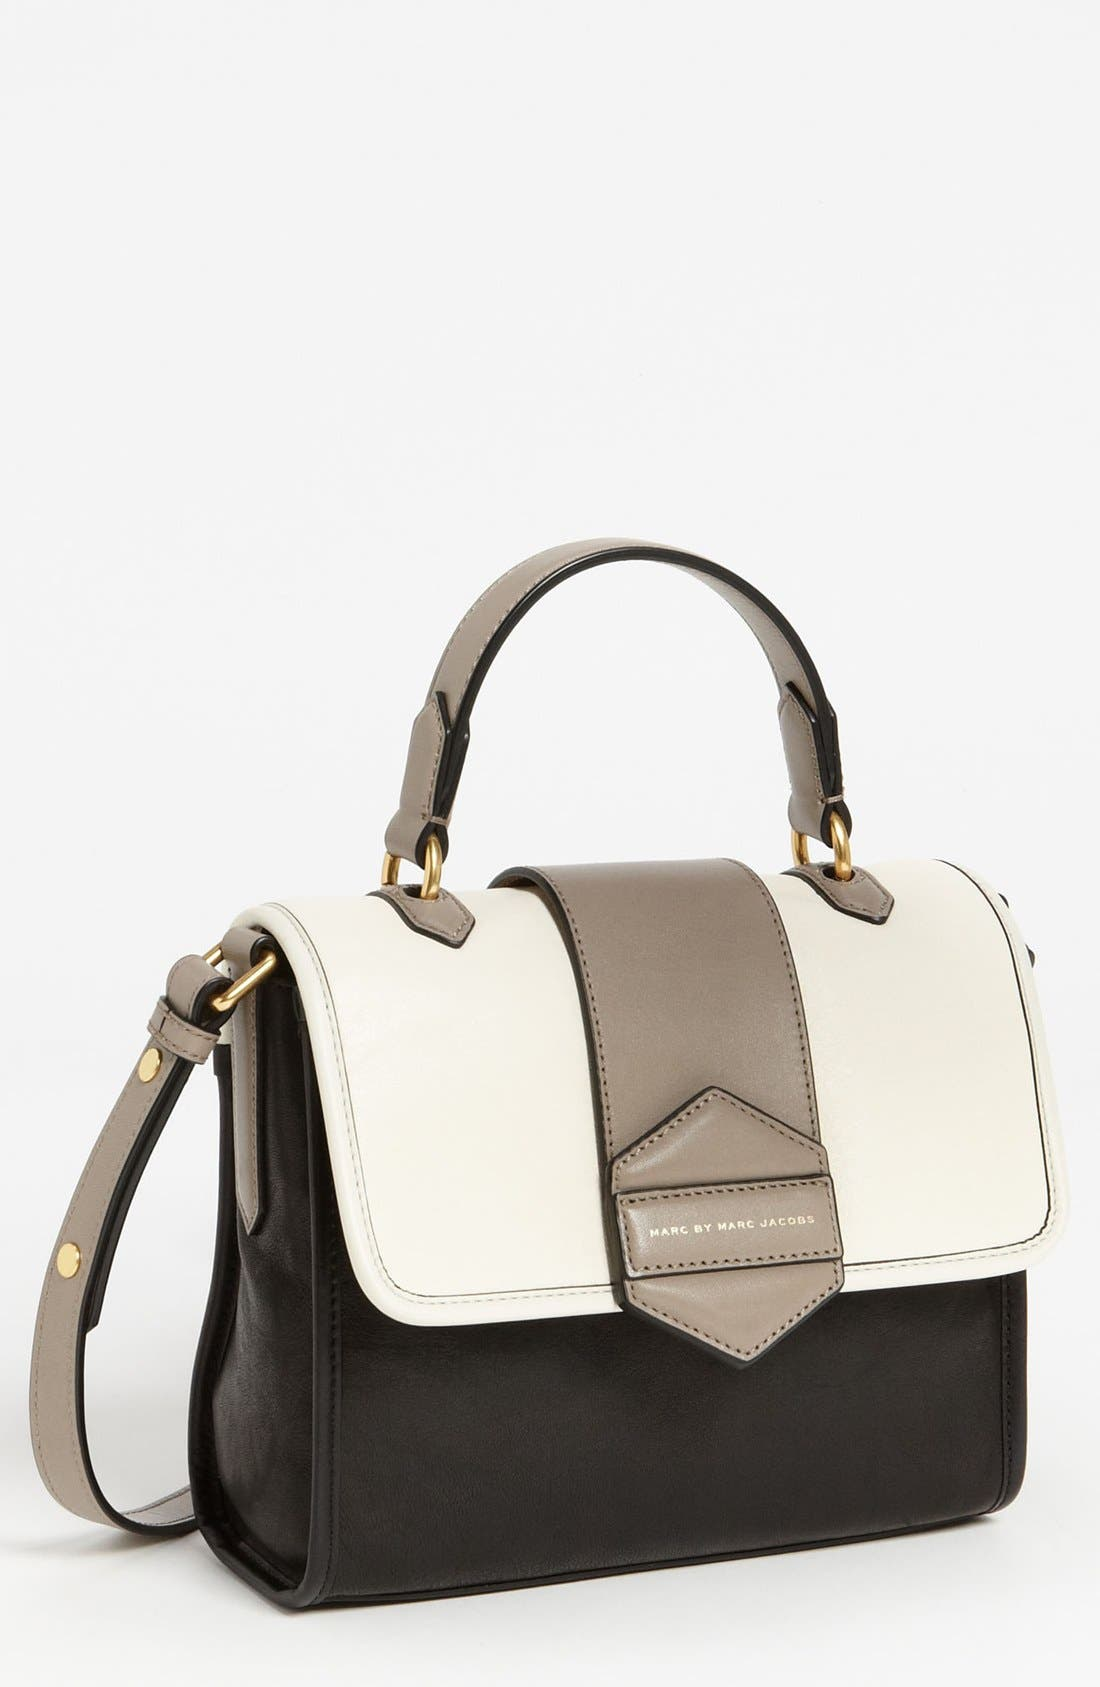 Main Image - MARC BY MARC JACOBS 'Flipping Out - Small' Satchel